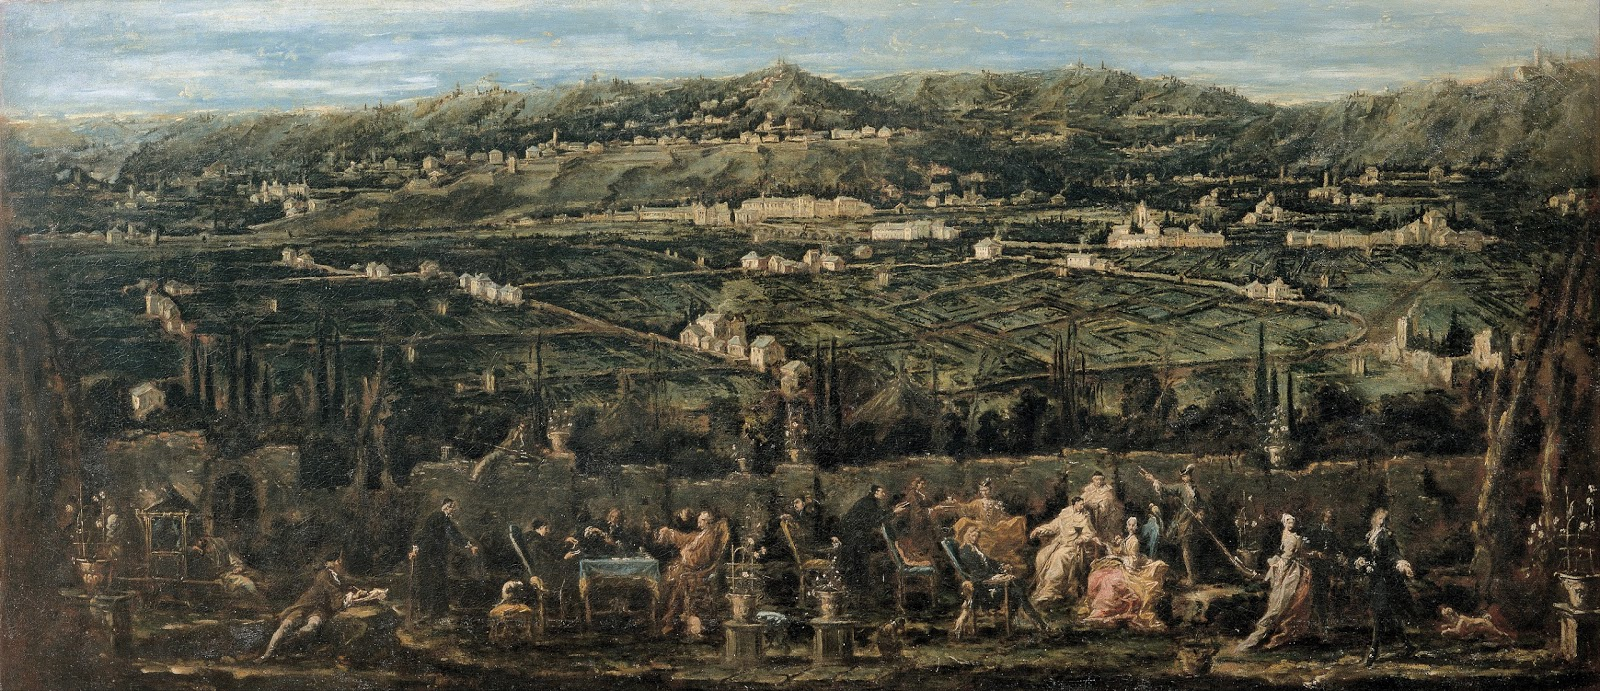 4 Alessandro_Magnasco_-_Garden_Party_in_Albaro_-_Google_Art_Project.jpg